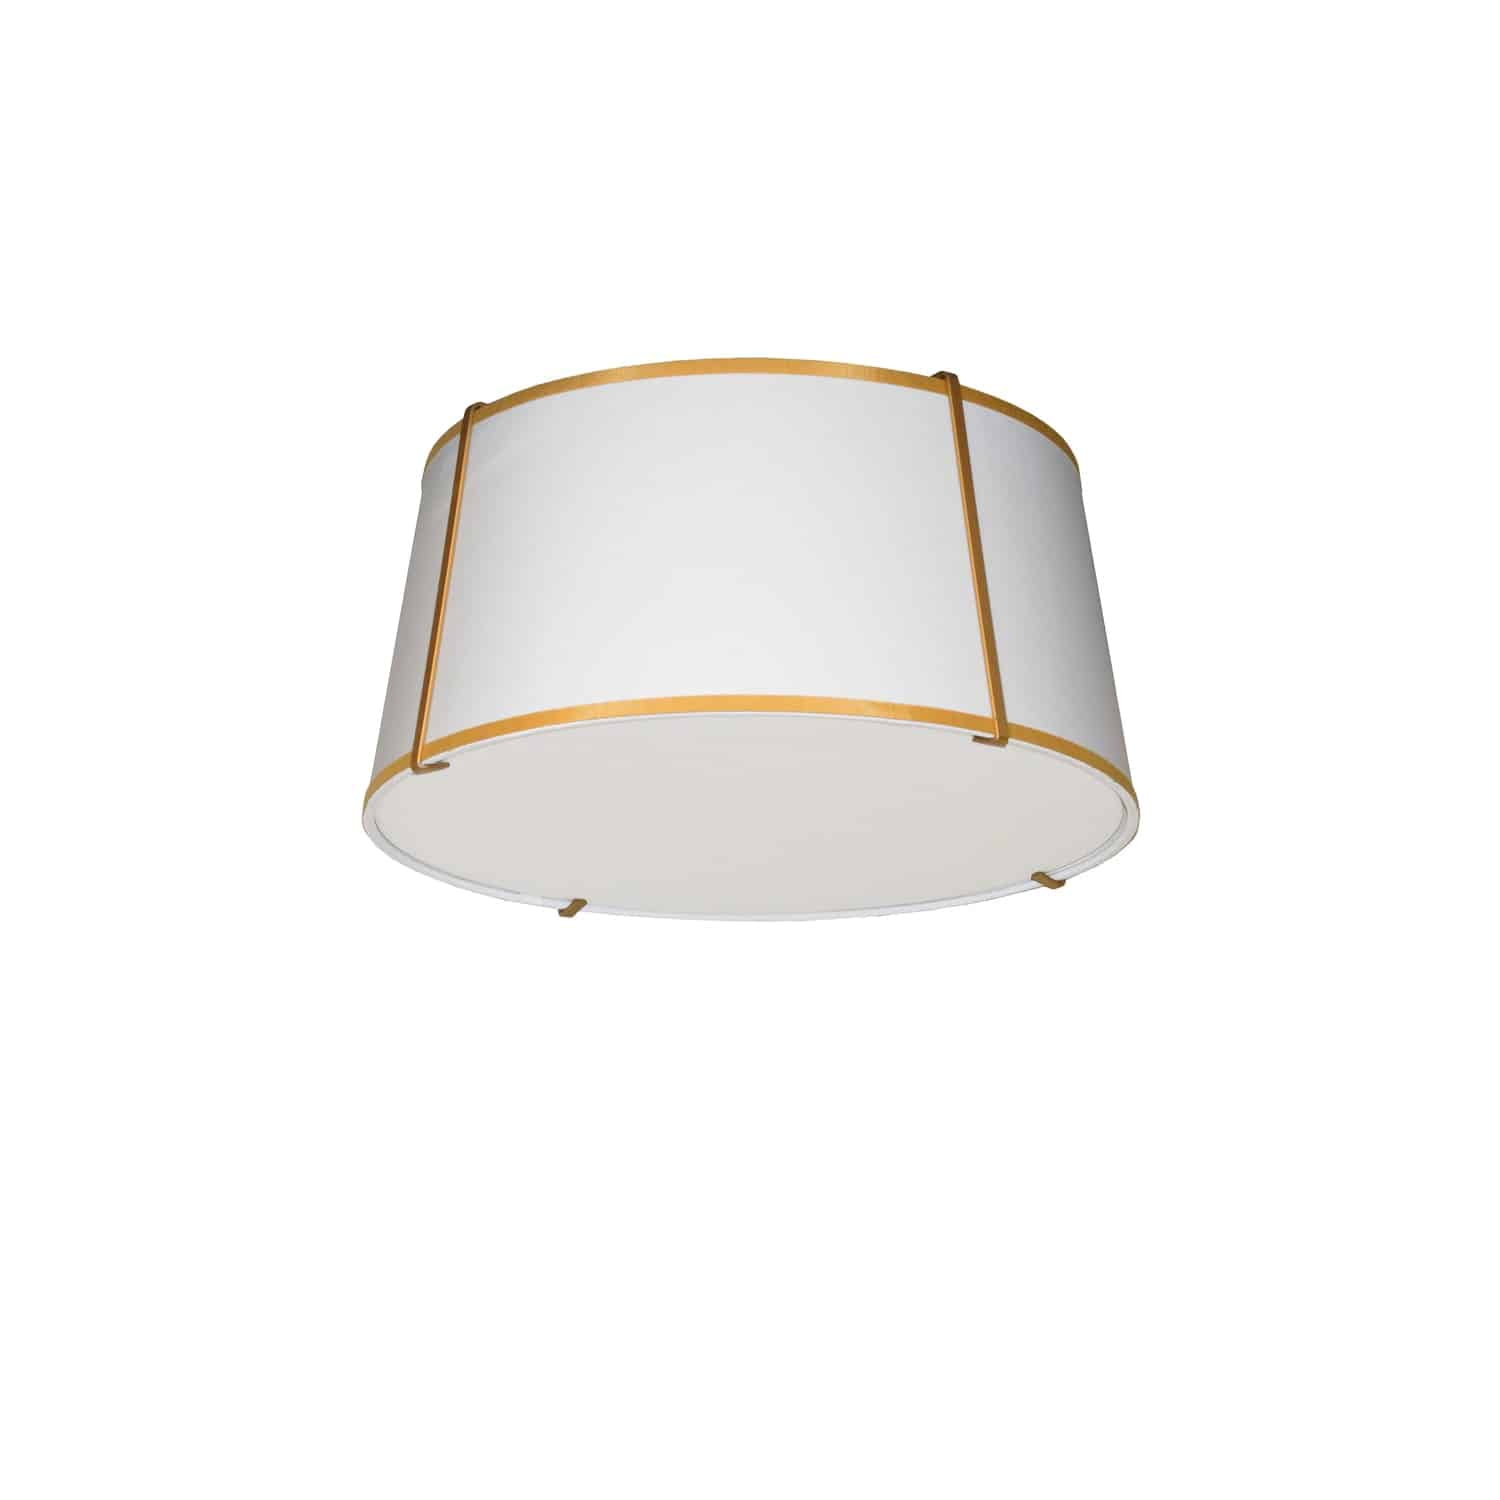 3 Light Trapezoid Flush Mount Gold frame and White Shade w/ 790 Diffuser